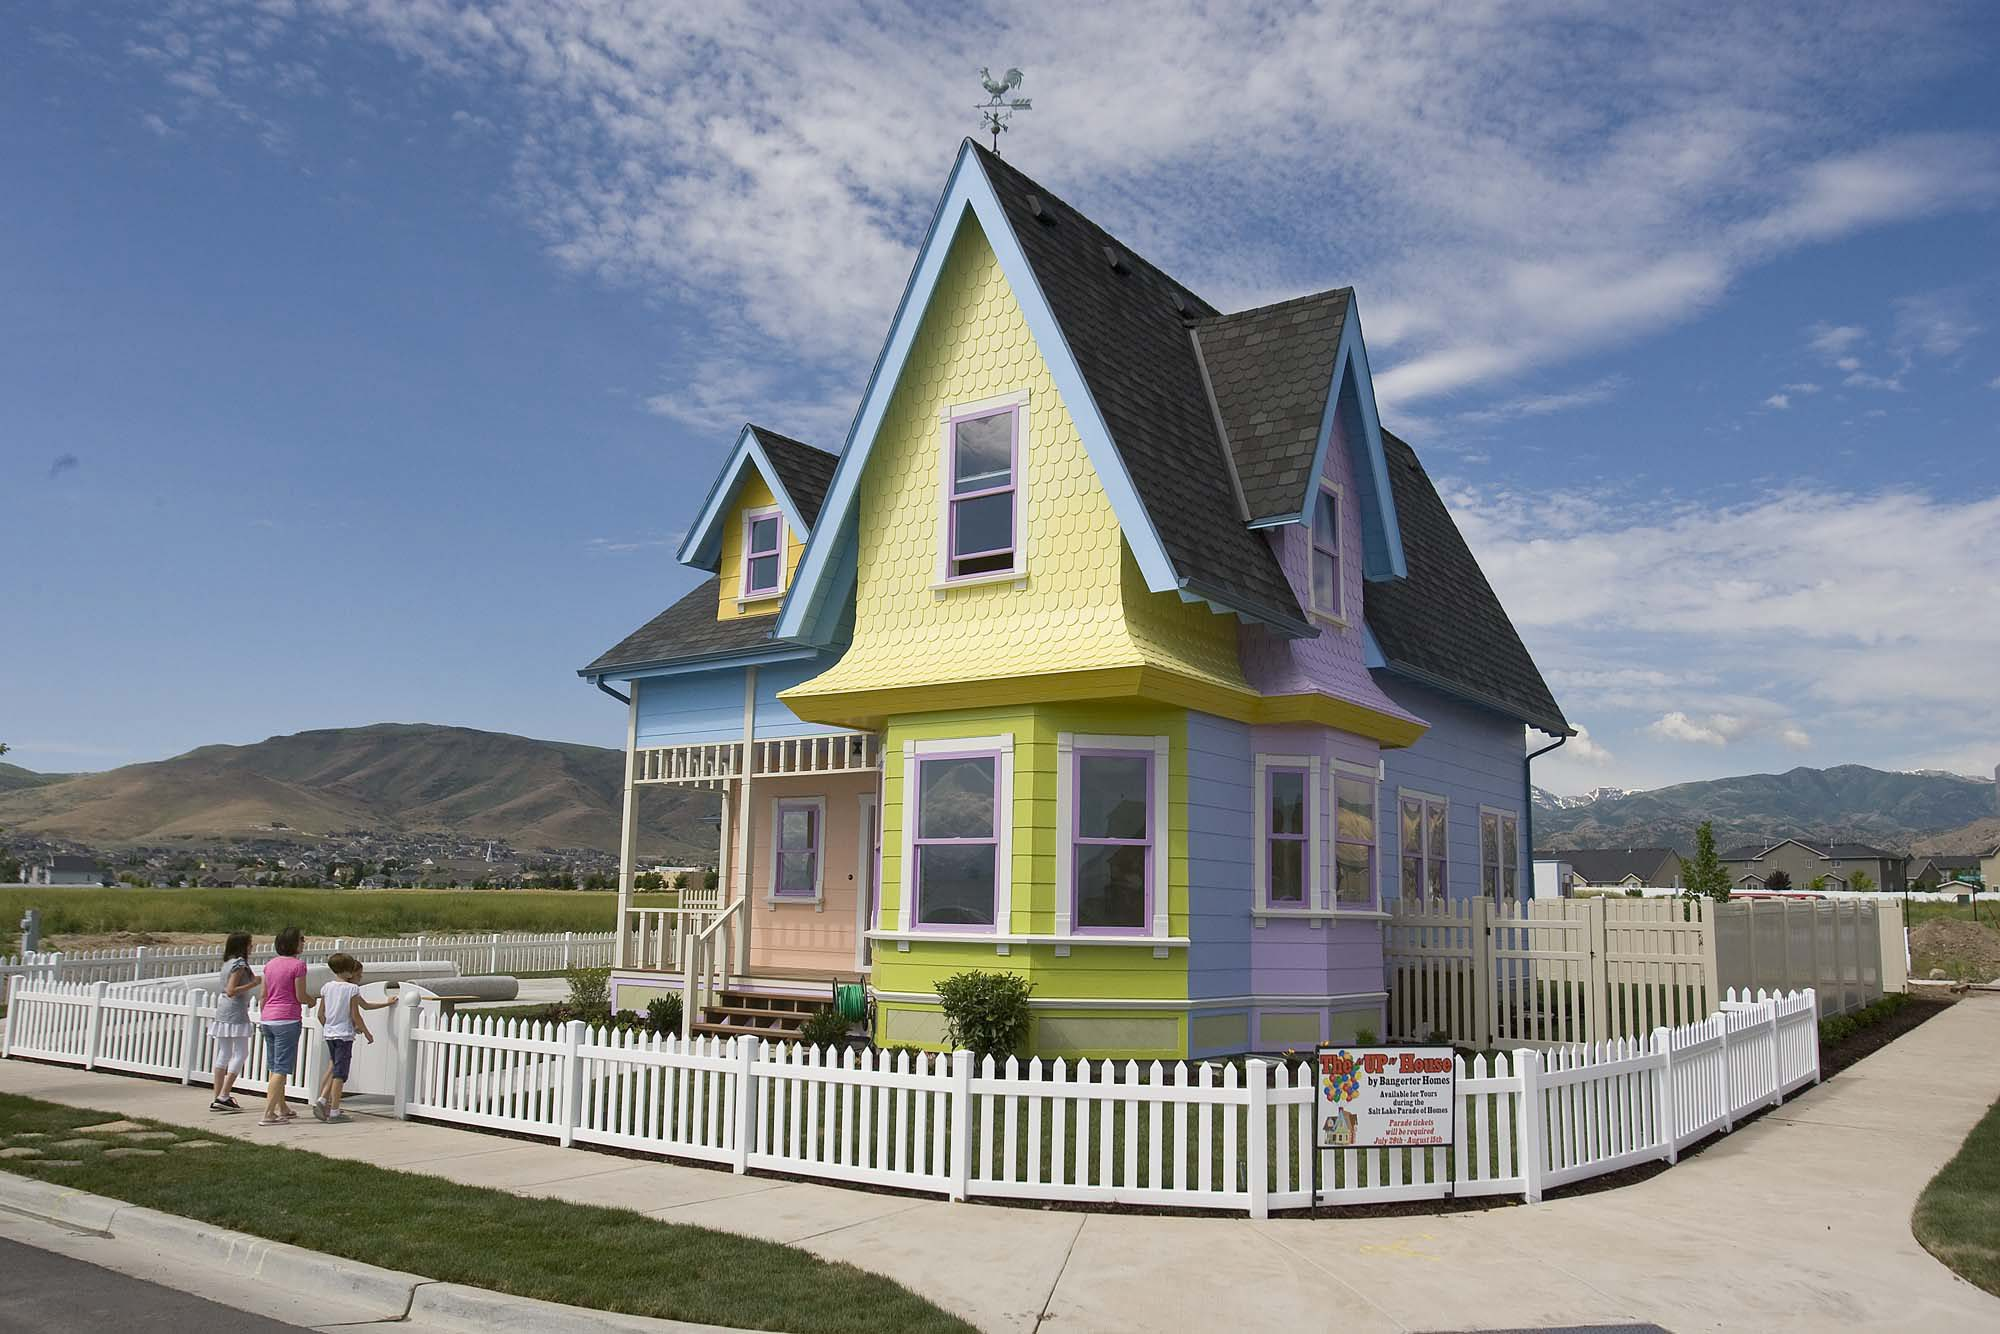 Real live house from the disney movie up sells for for Utah house